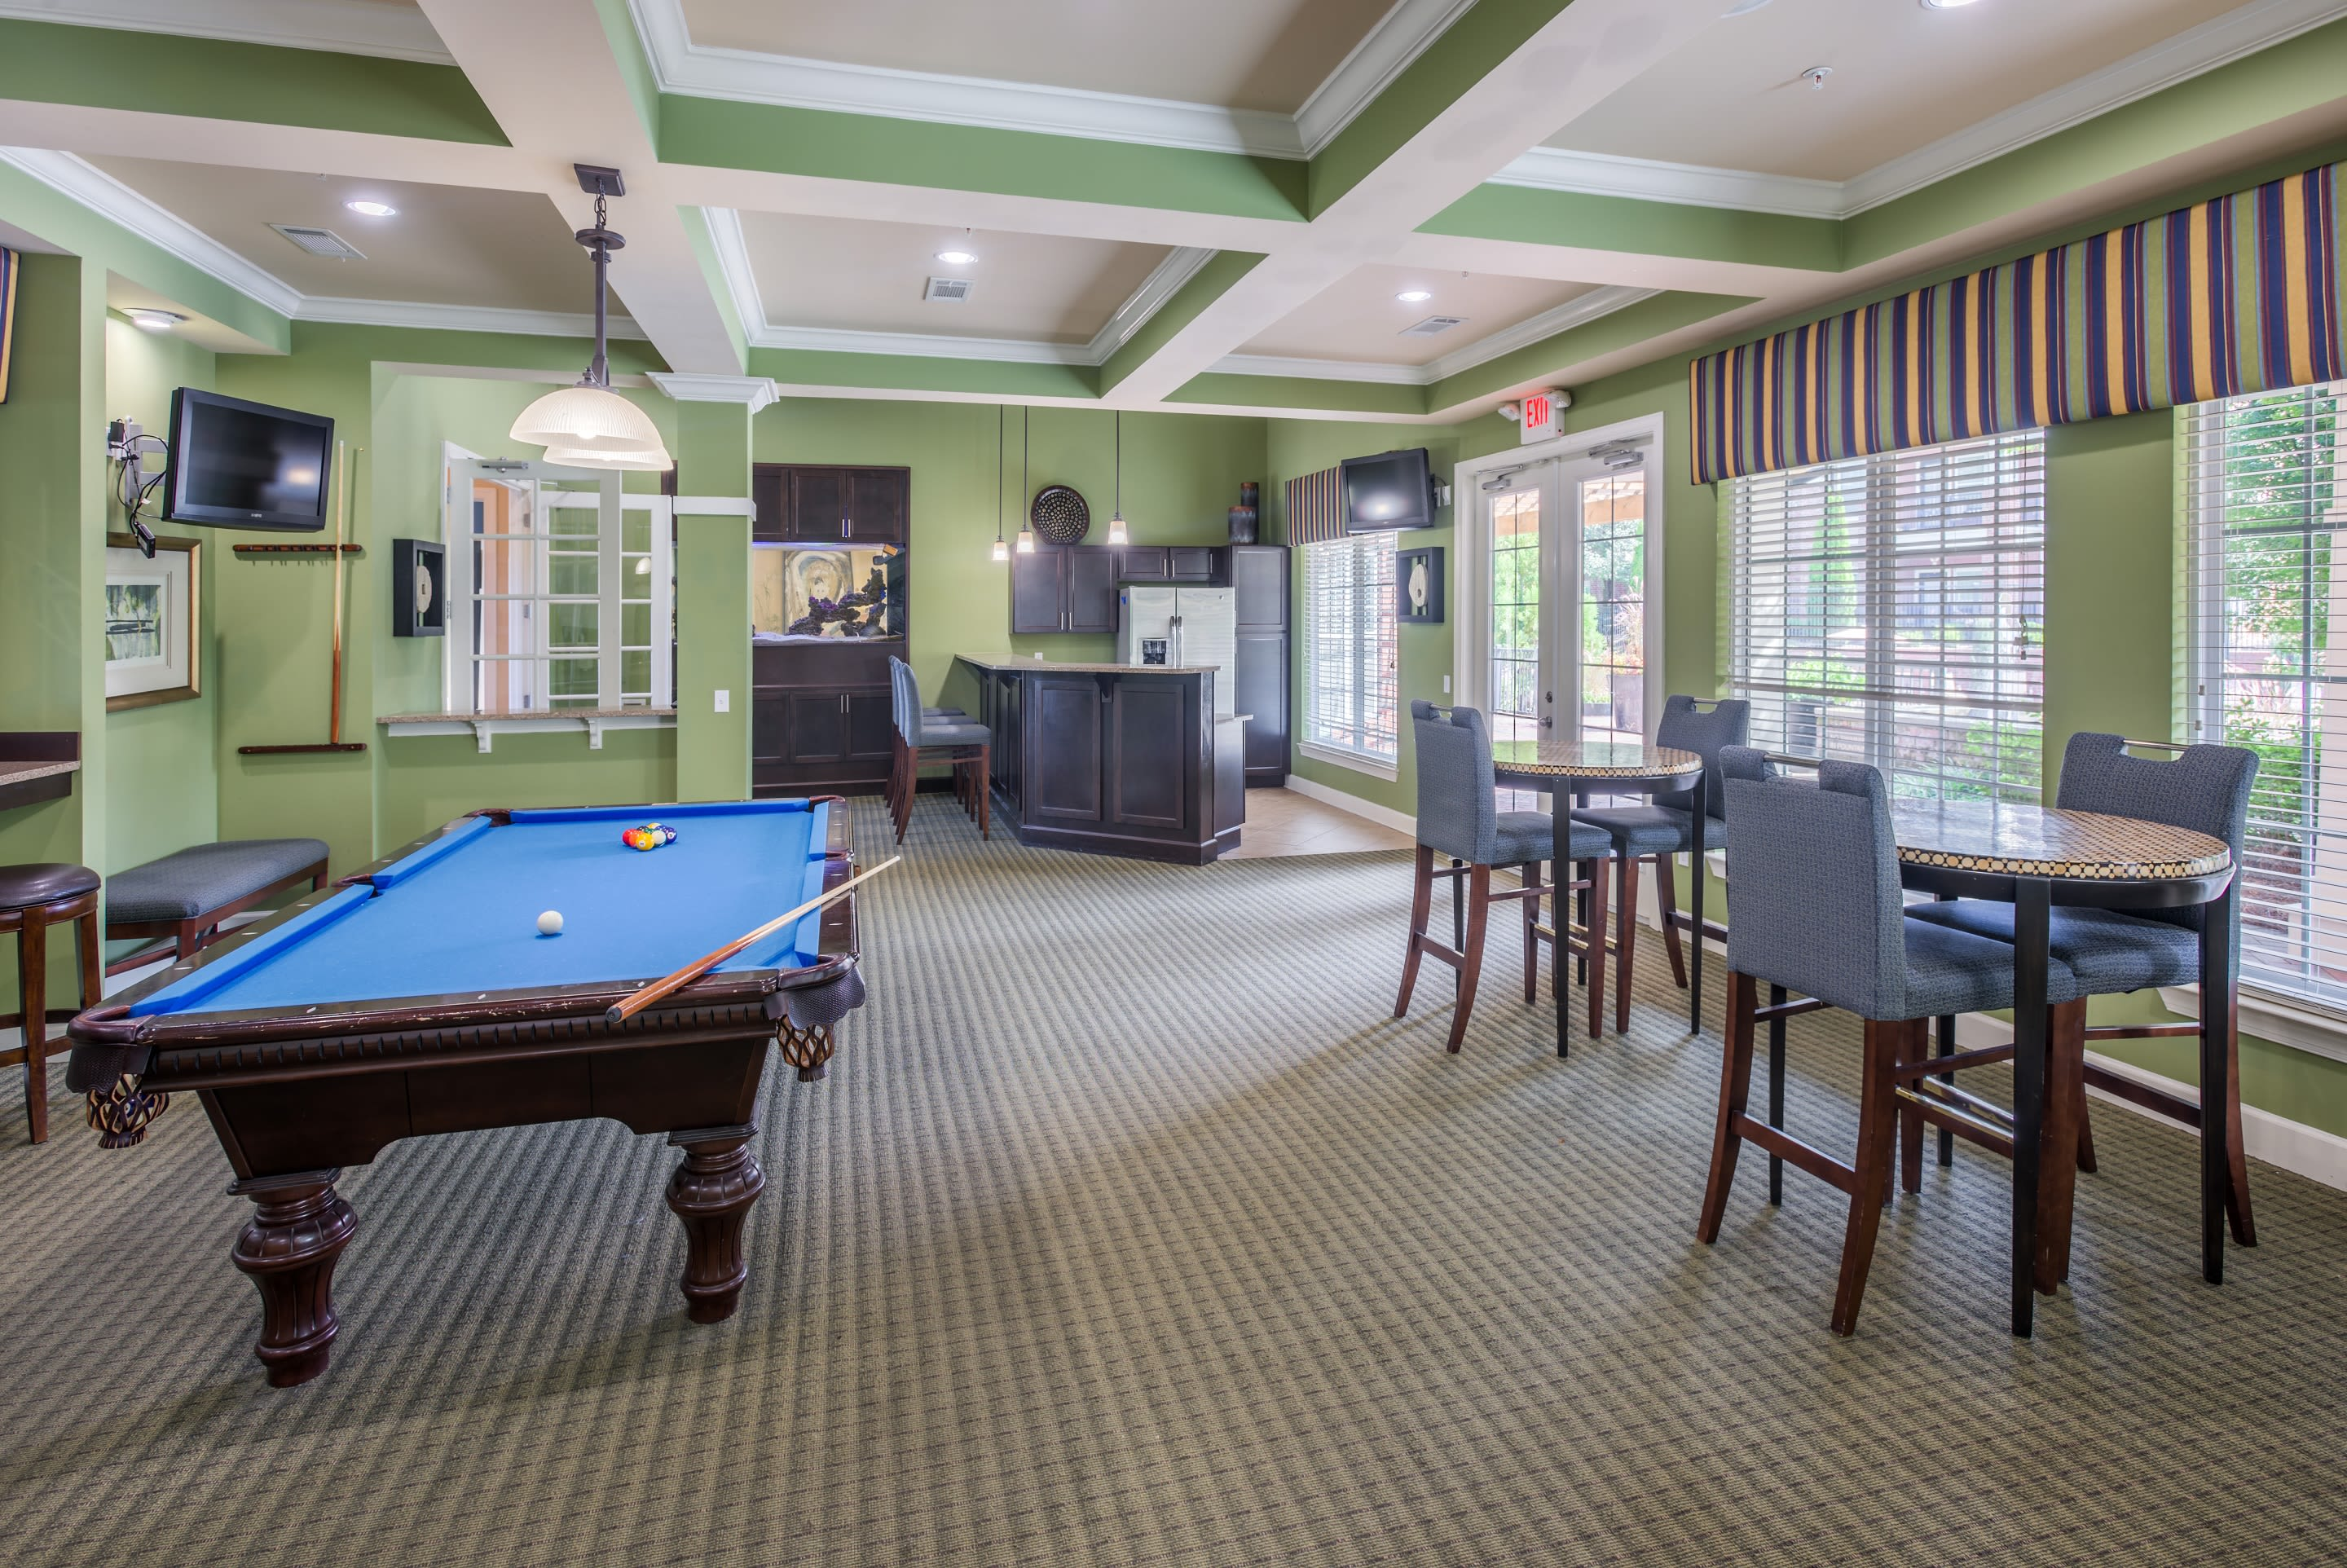 Billiards and clubhouse at The Vive in Kannapolis, North Carolina